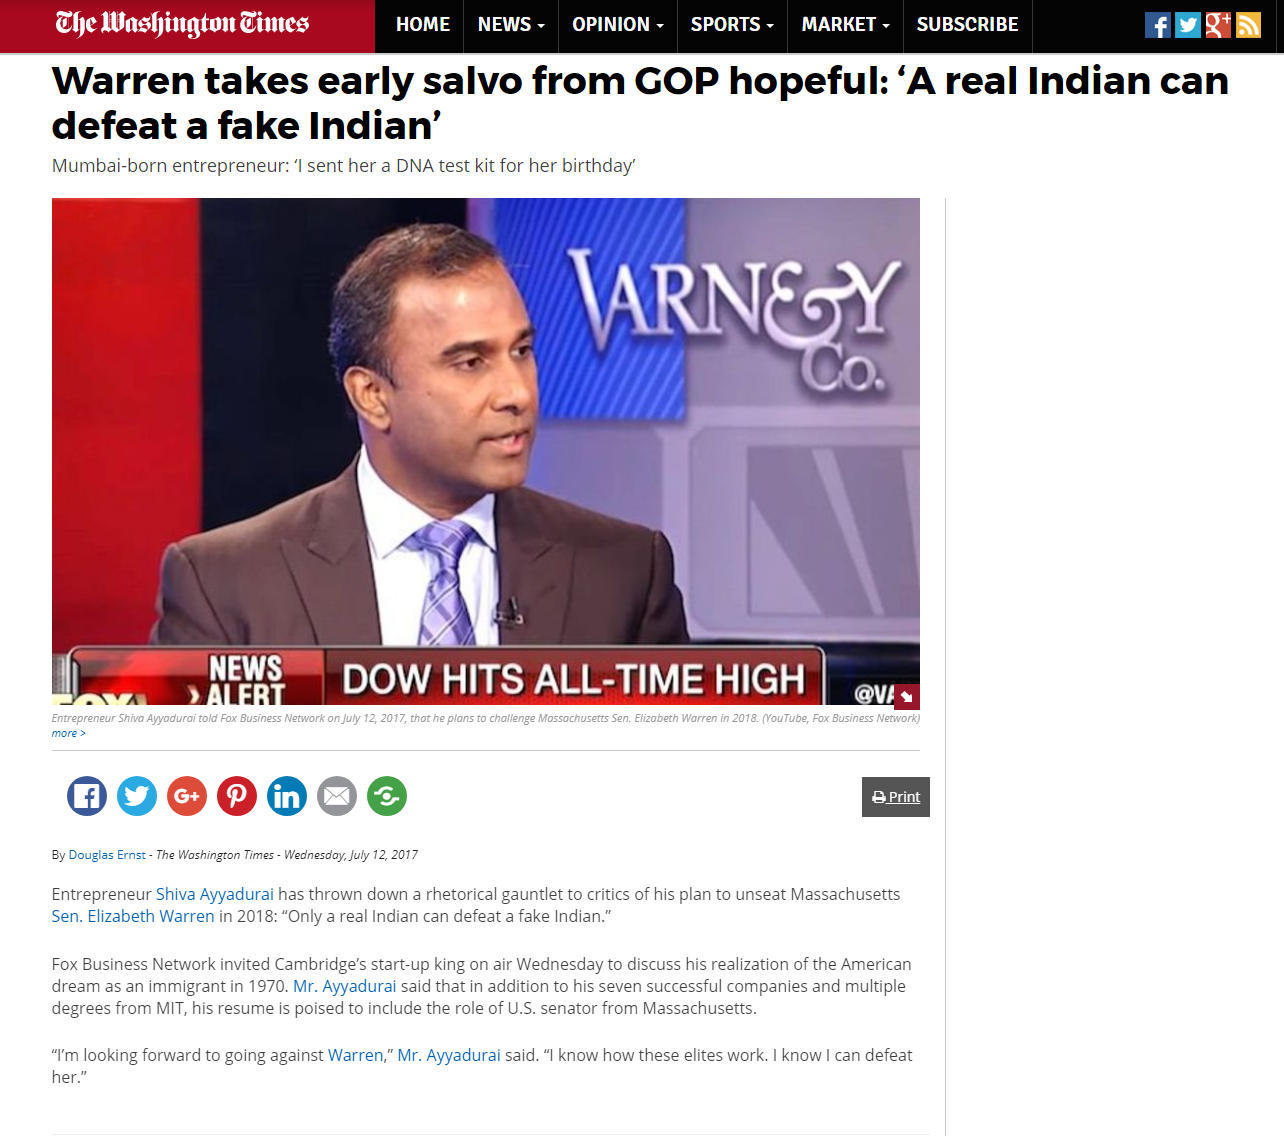 Warren Takes Early Salvo From GOP Hopeful: 'A Real Indian Can Defeat A Fake Indian'